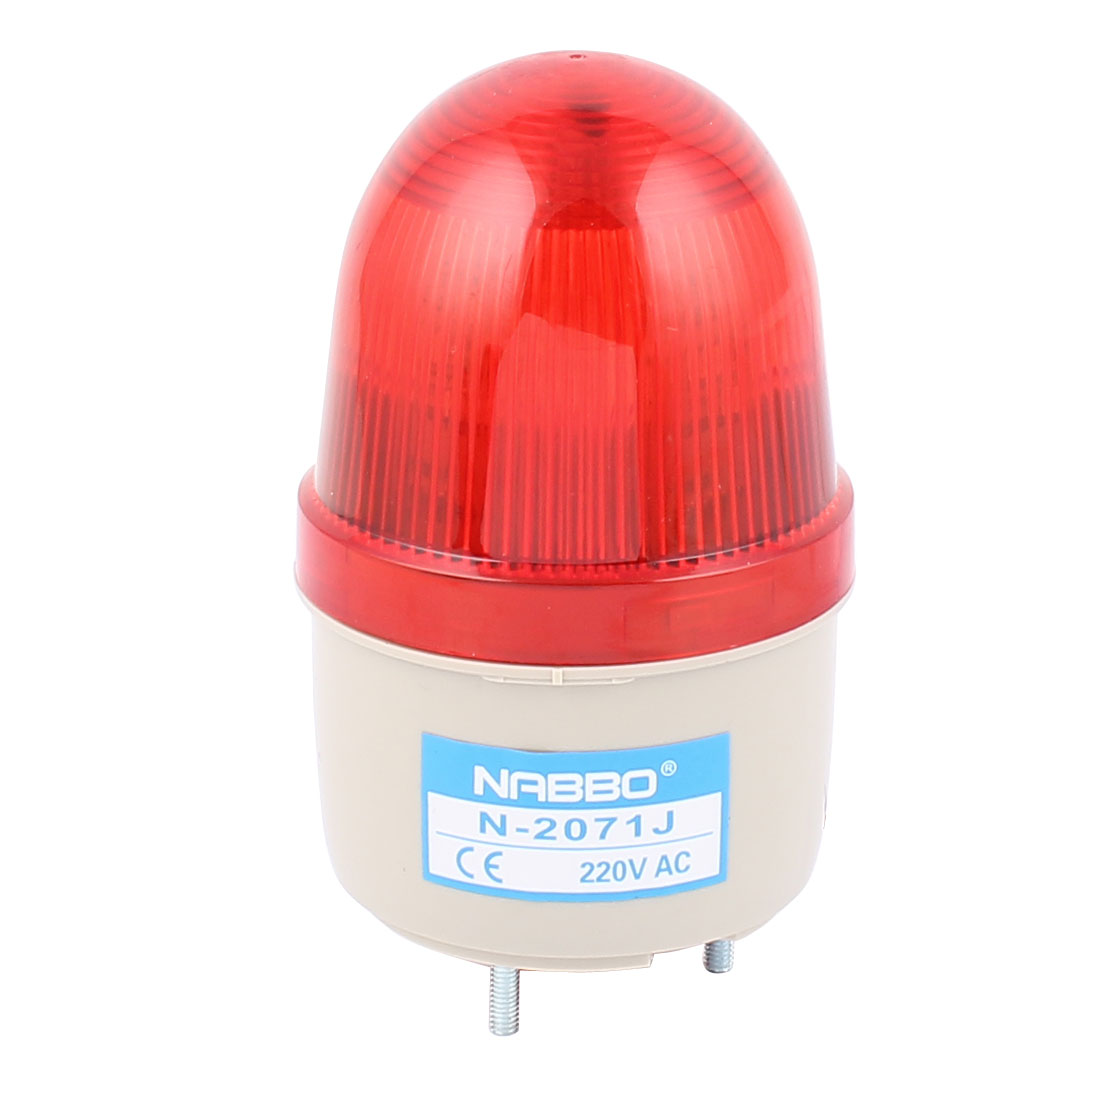 N-2071J AC 220V Buzzer Sound Industrial Safety Rotary Lamp Signal Warning Flashing Light Red